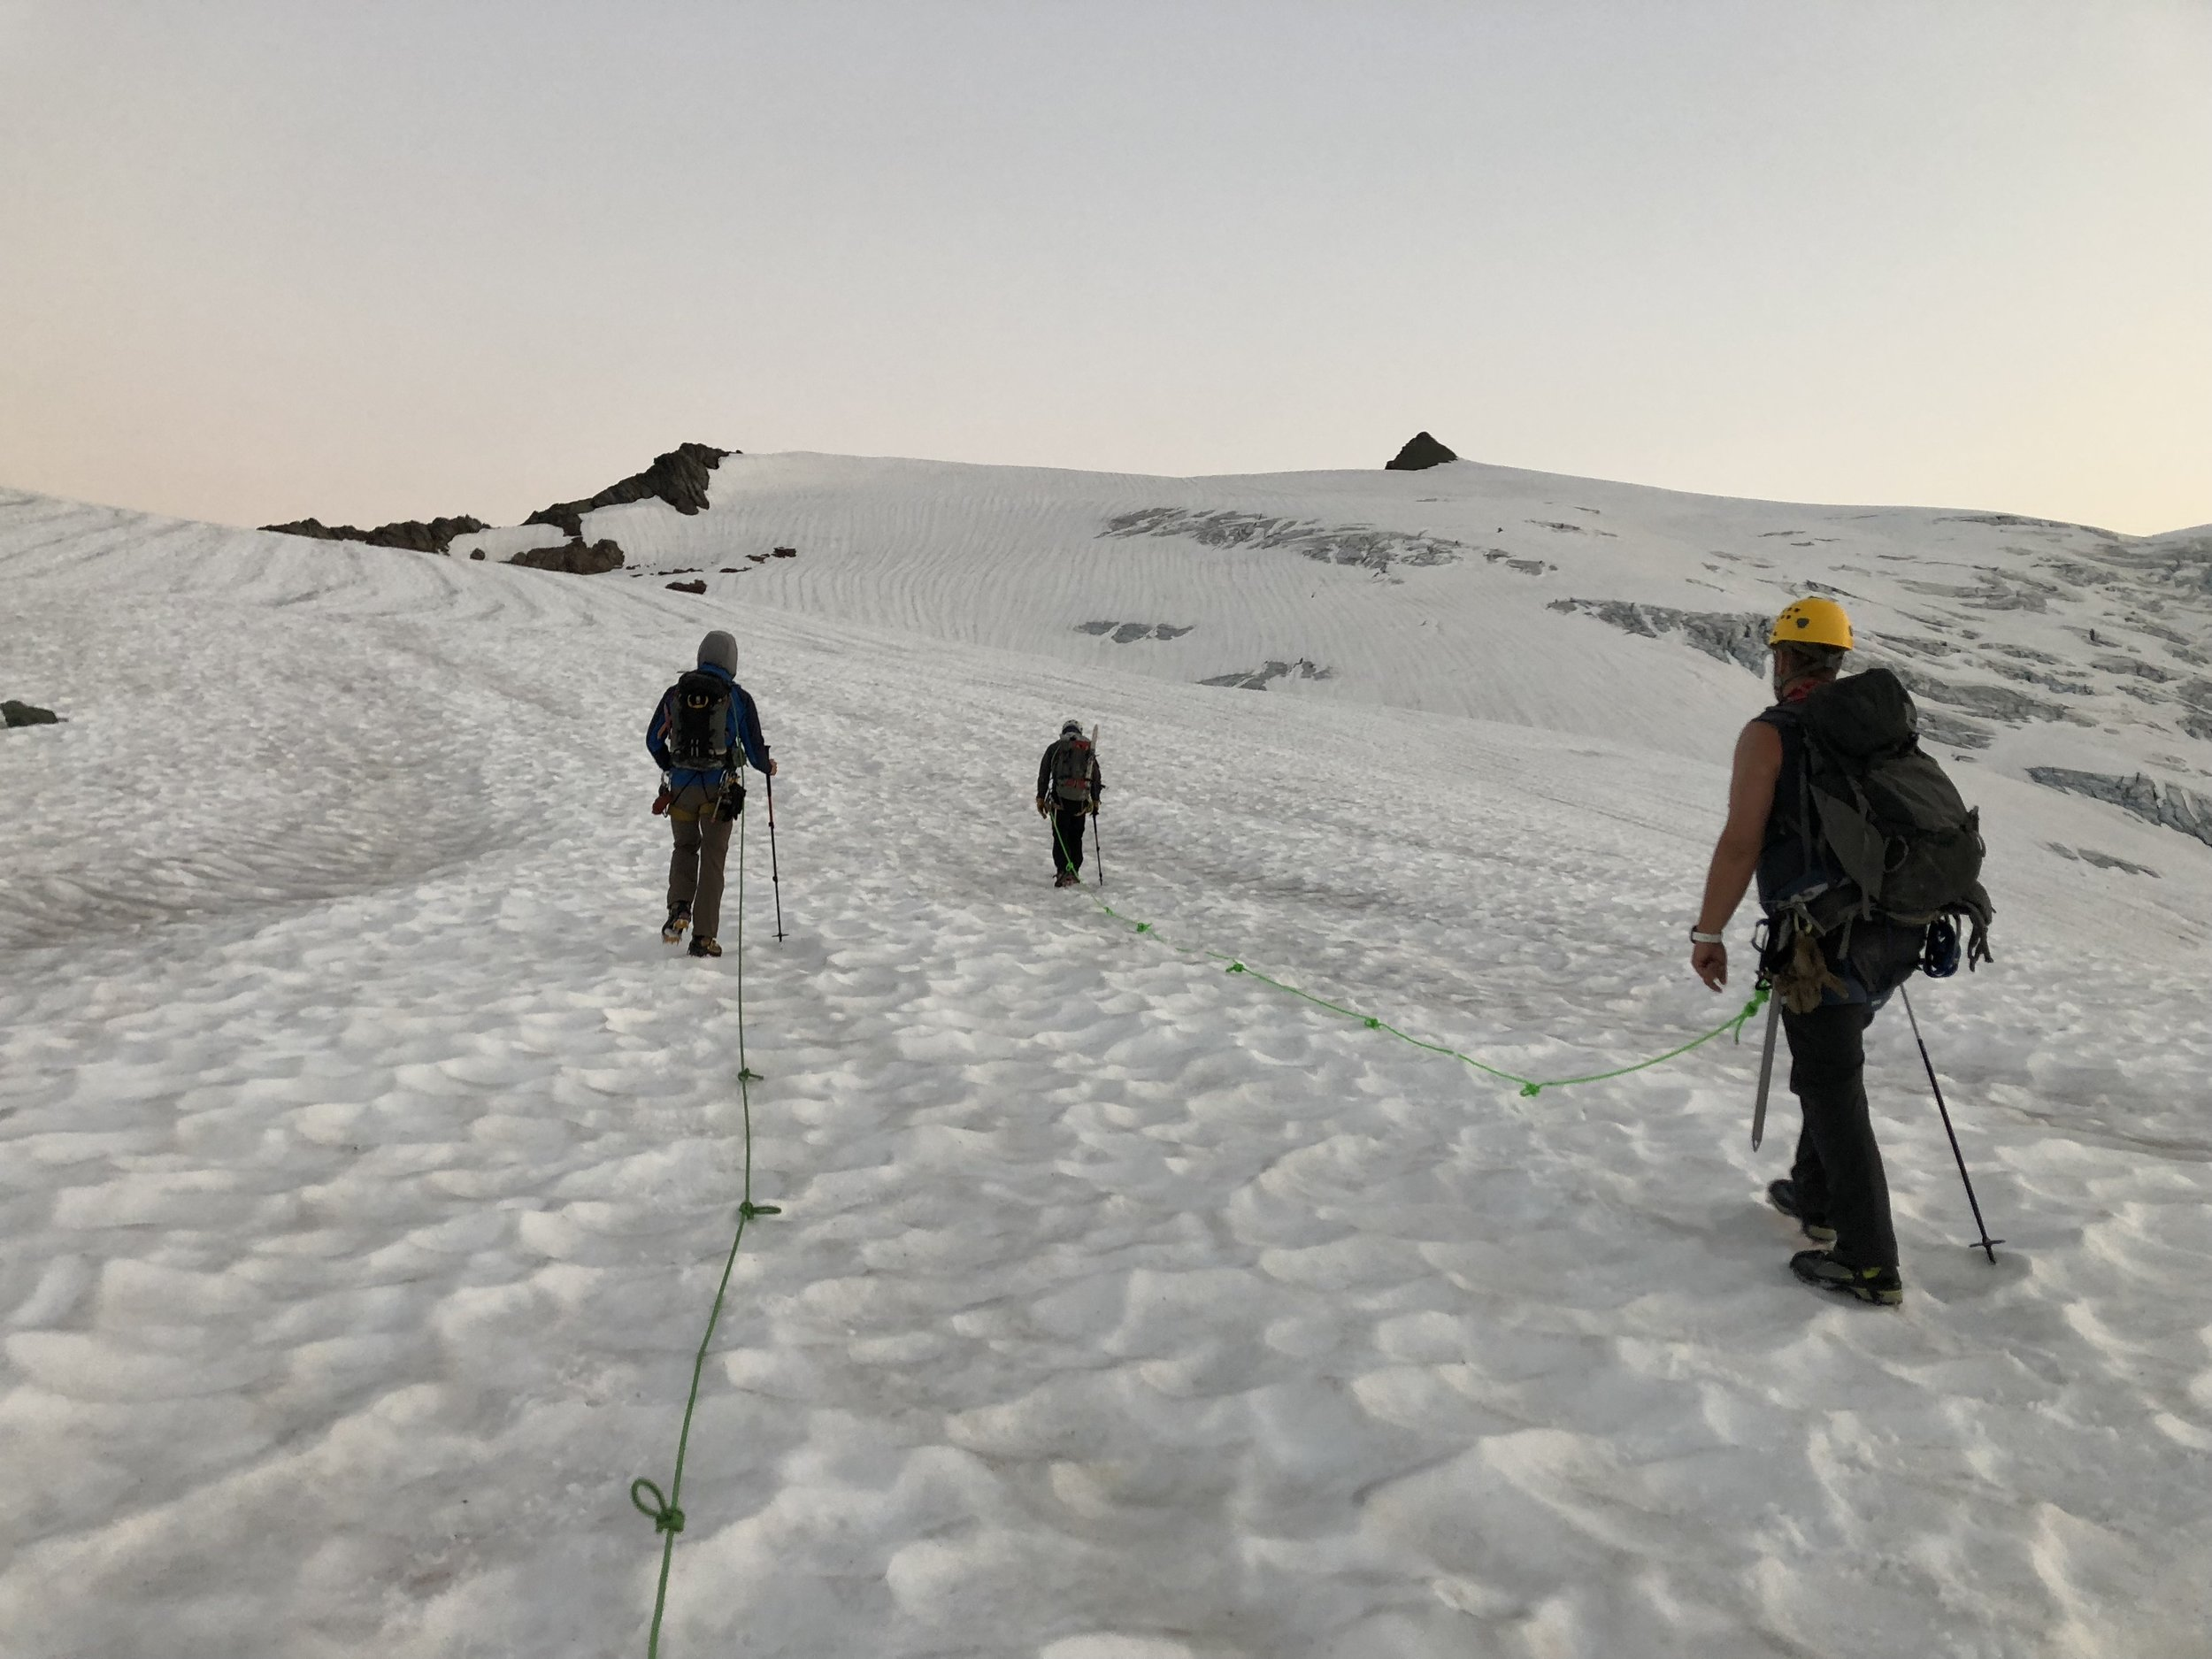 Our team leaving camp and heading up the Sulphide Glacier.